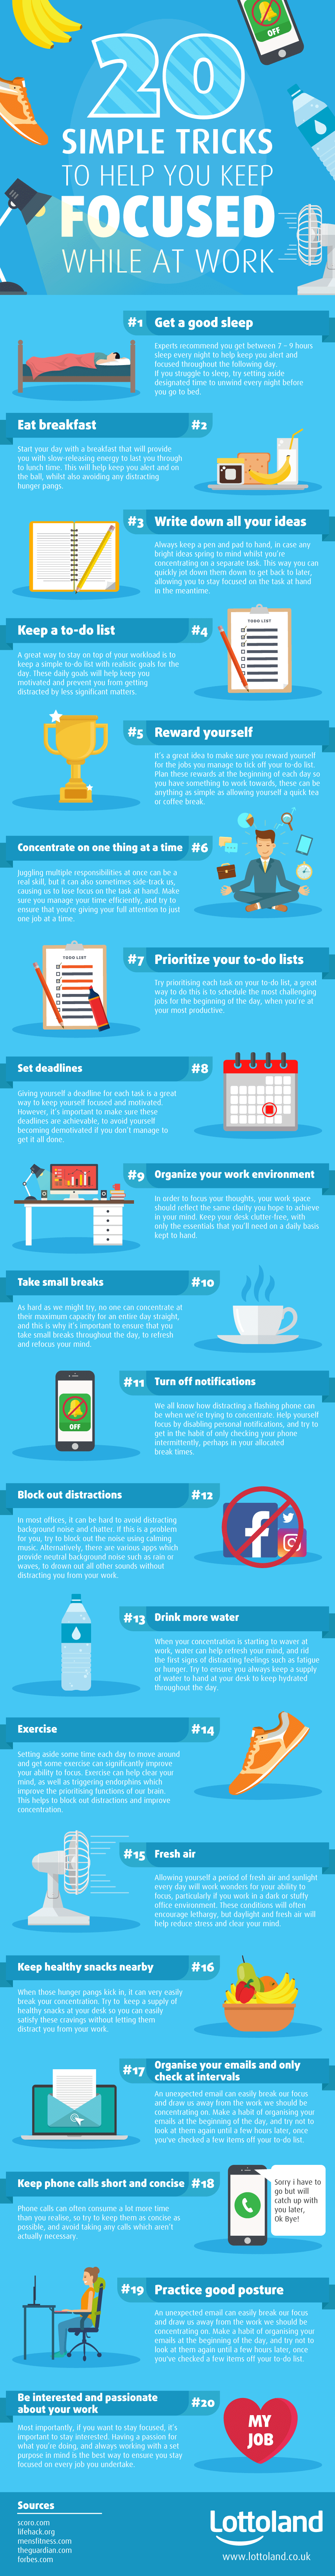 20 Ways To Make Sure You're Focused At Work - Infographic